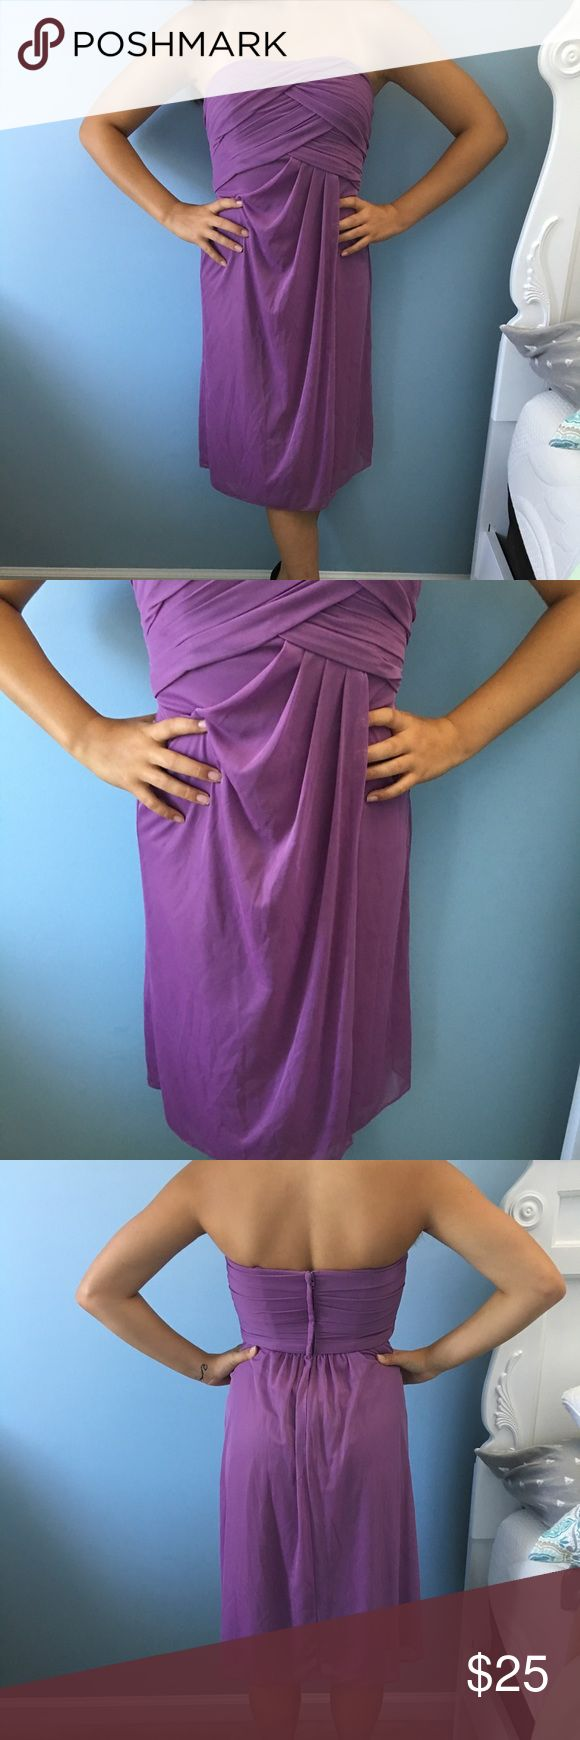 Purple cocktail dress Beautiful dress worn one time. Perfect for cocktails, date night, or wedding. Smoke and pet-free home. David's Bridal Dresses Strapless